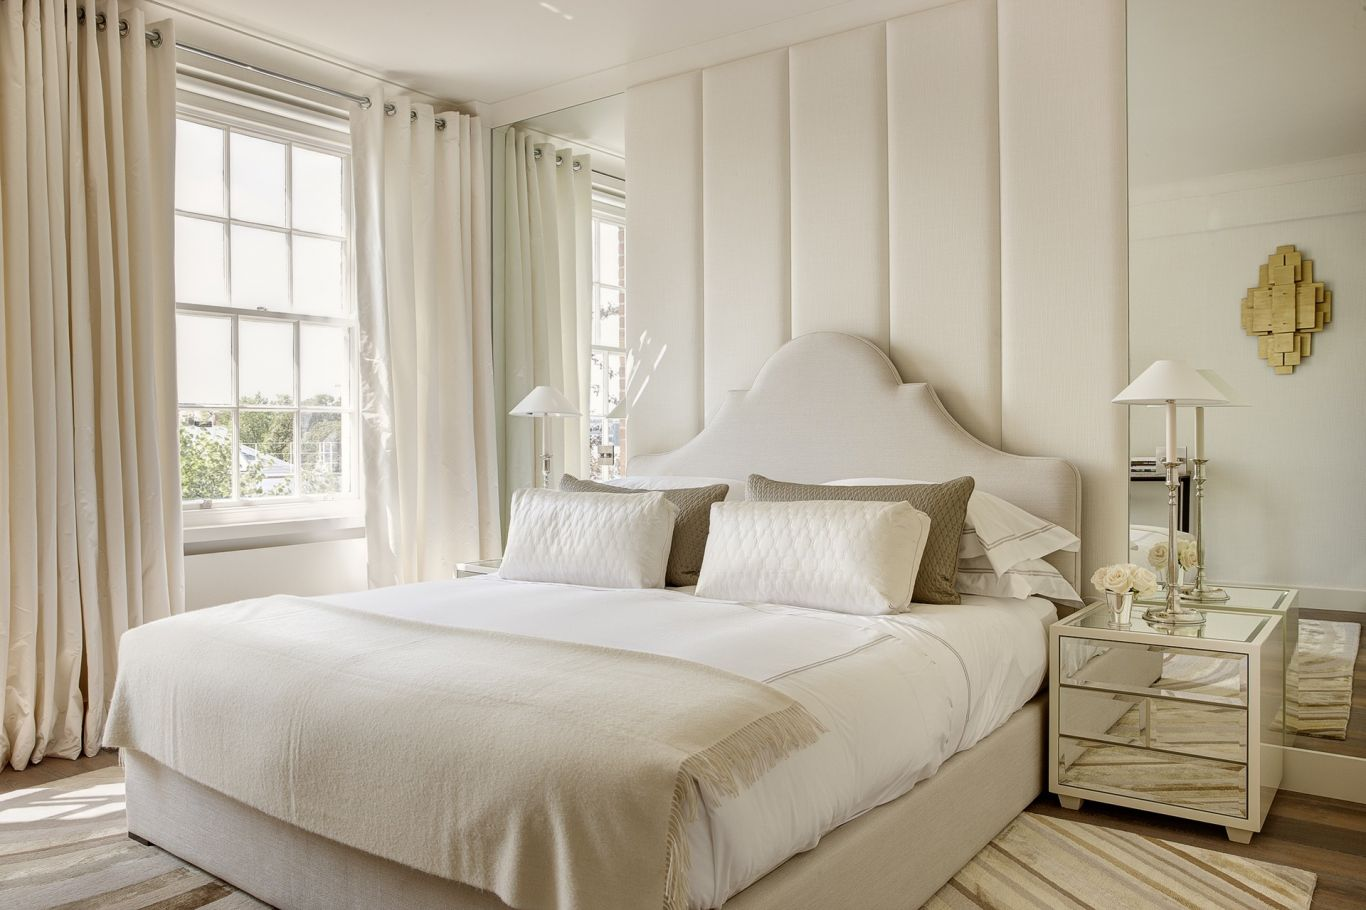 Interior bedroom design with smart features